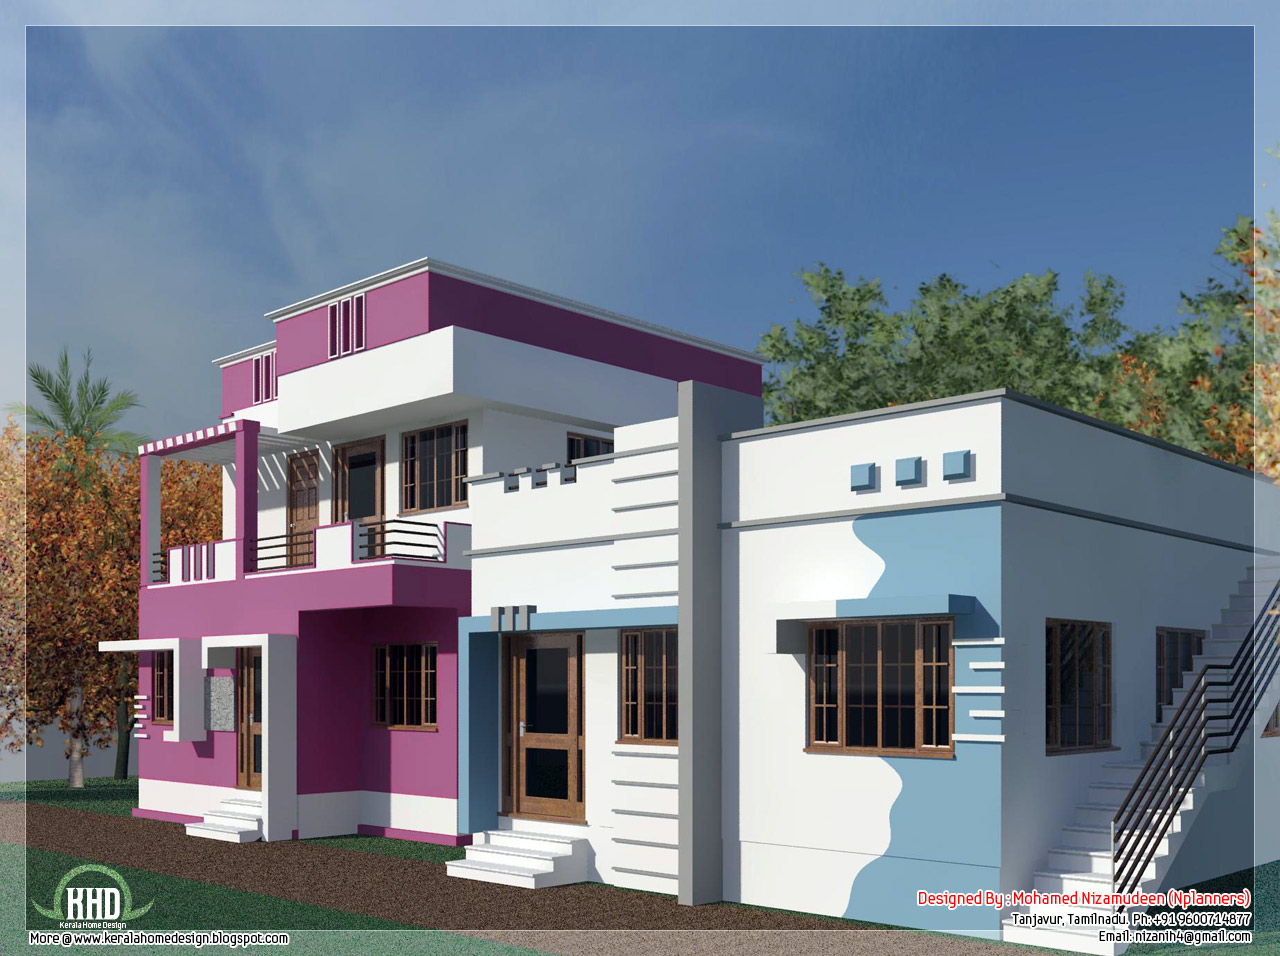 tamilnadu model home design in 3000 kerala home design and floor plans. Black Bedroom Furniture Sets. Home Design Ideas